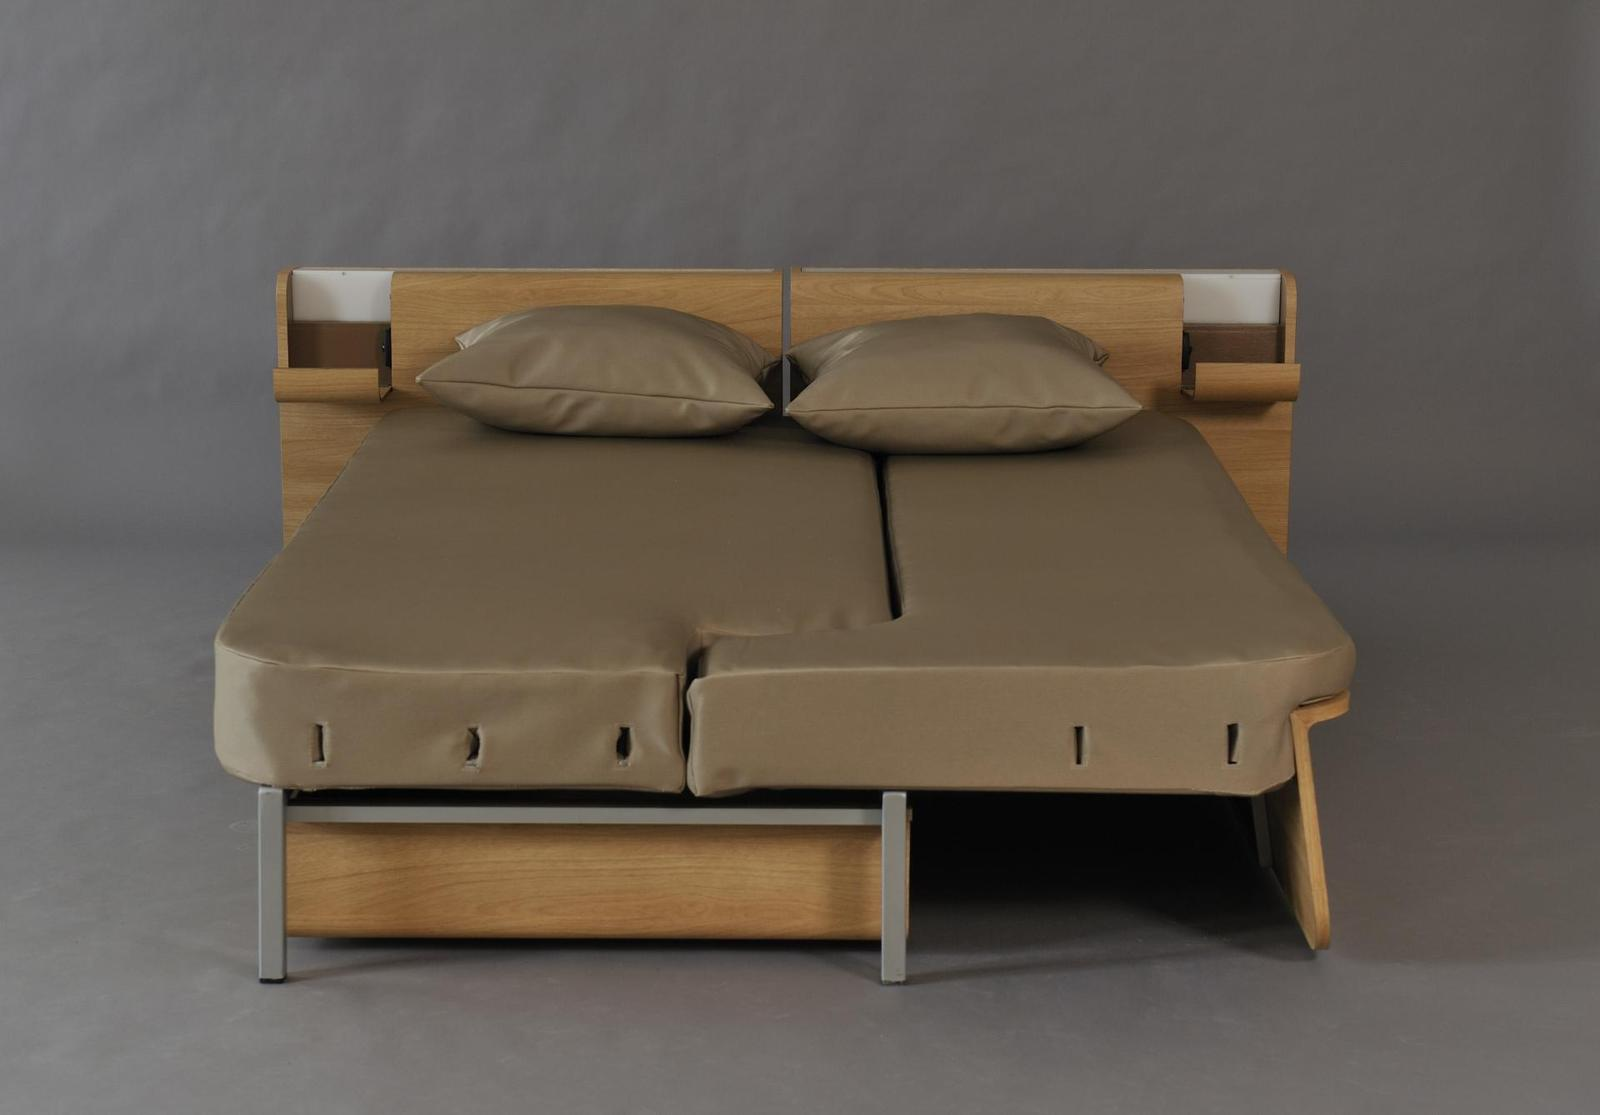 Multi Purpose Furniture Ideas Multi Function Couch Is Also Counter And Bed